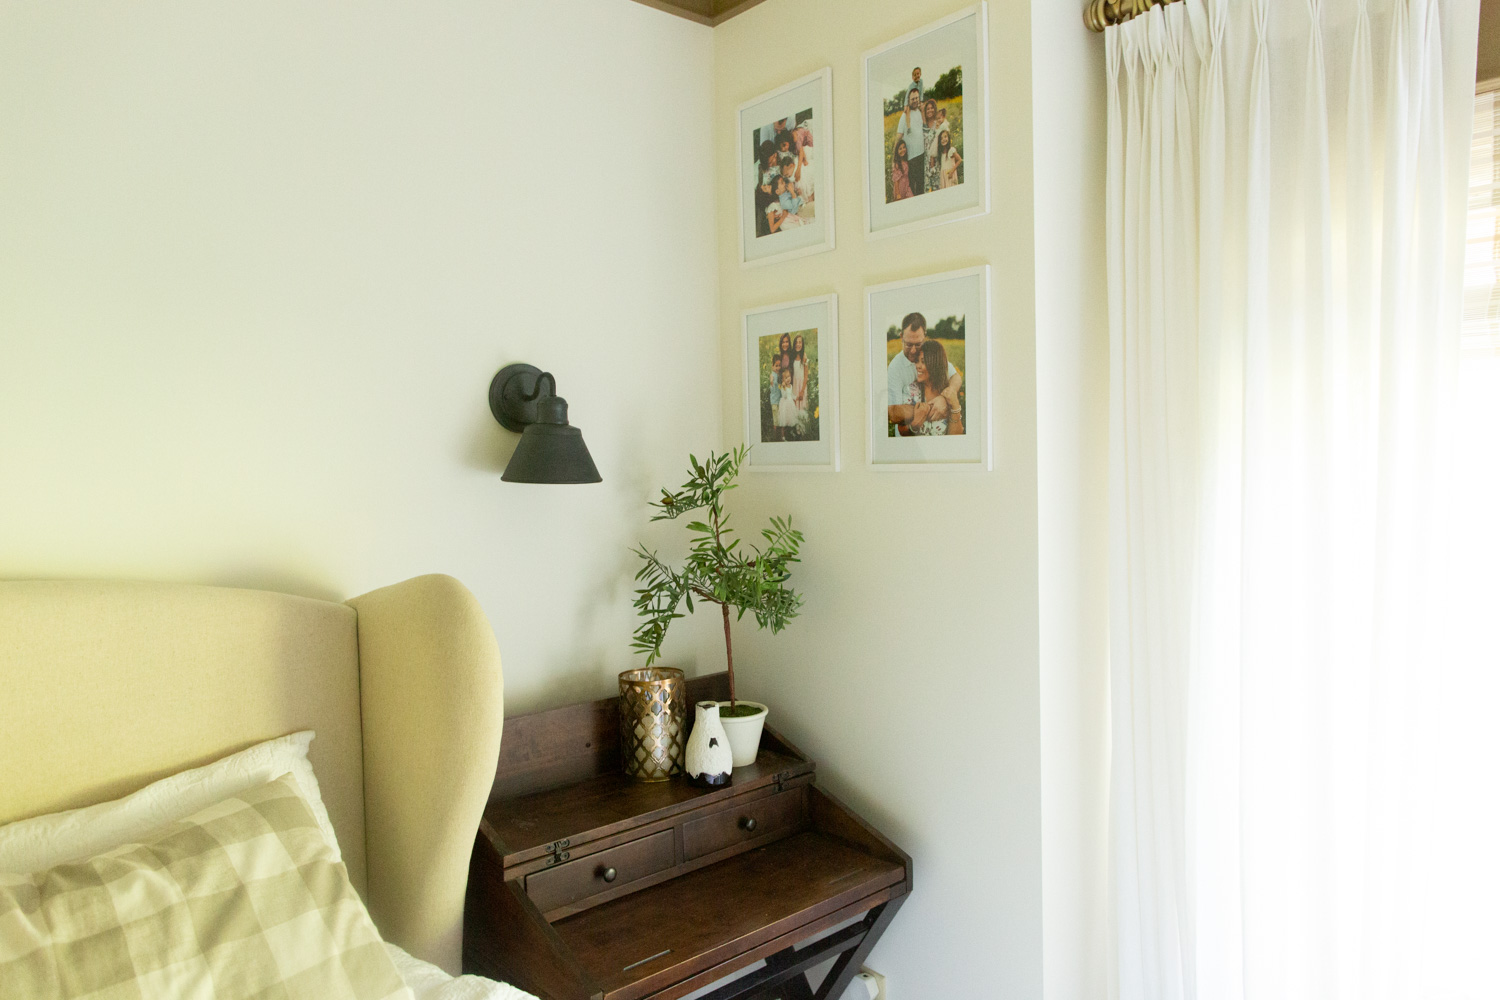 DIY Wall Sconce Lighting without Electricity or Power ... on Sconces No Electric Power id=84874